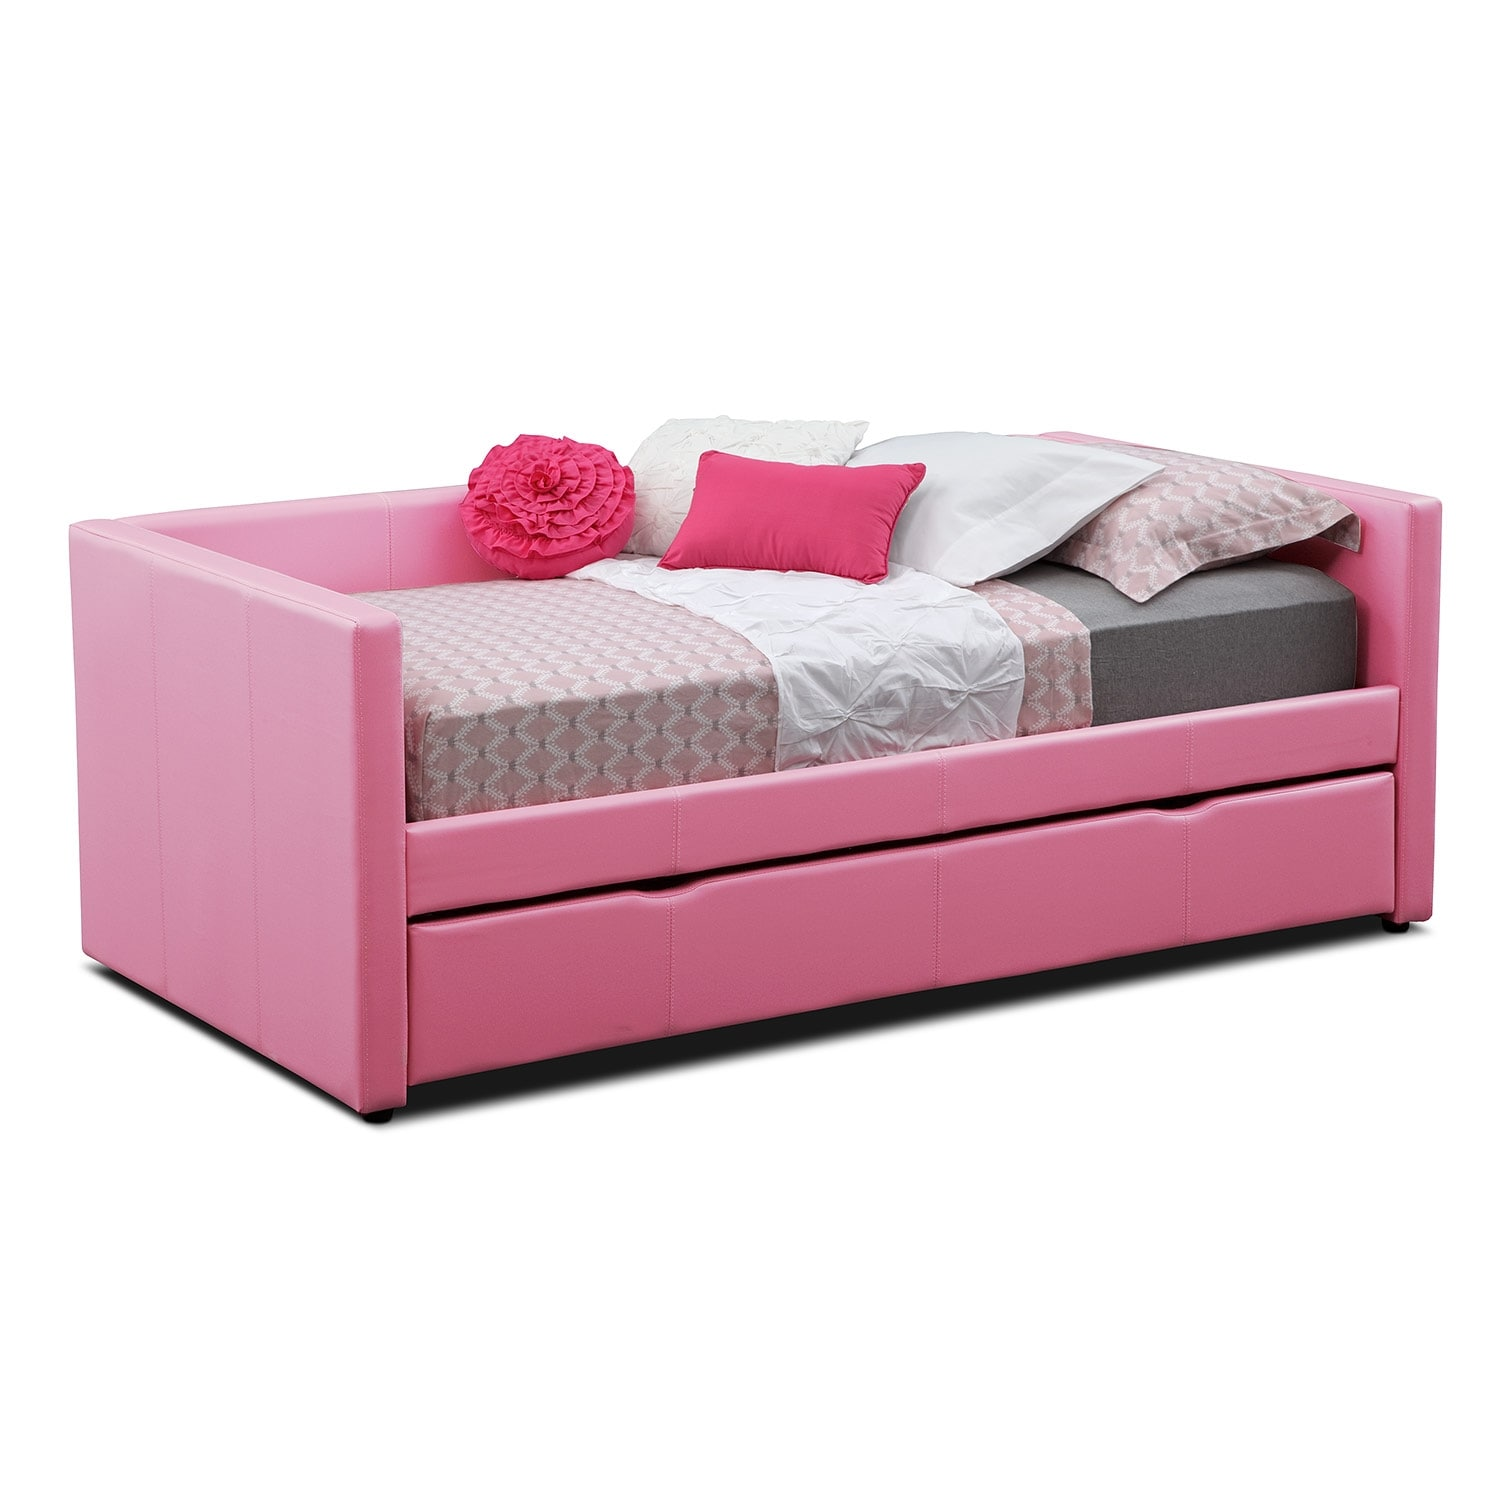 Kids Furniture - Carey Pink Twin Daybed with Trundle